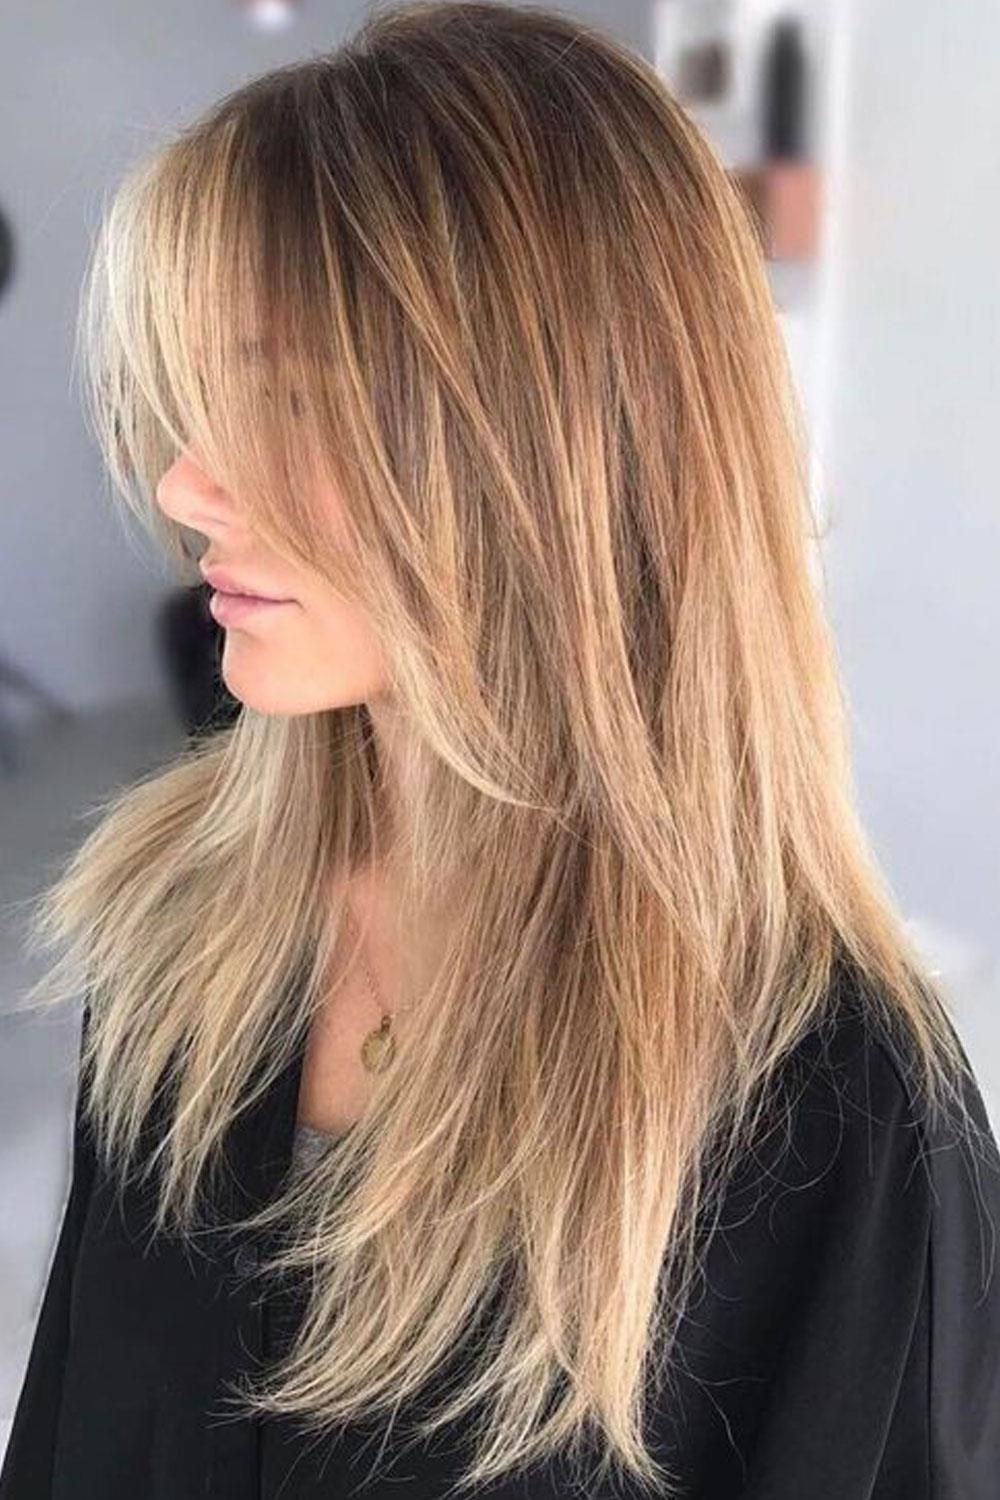 2019 LONG LAYERED HAIRSTYLES: BEAUTIFUL HAIRSTYLES,SO THAT LEAVE YOUR HAIR BREATH. #longlayeredhaircuts